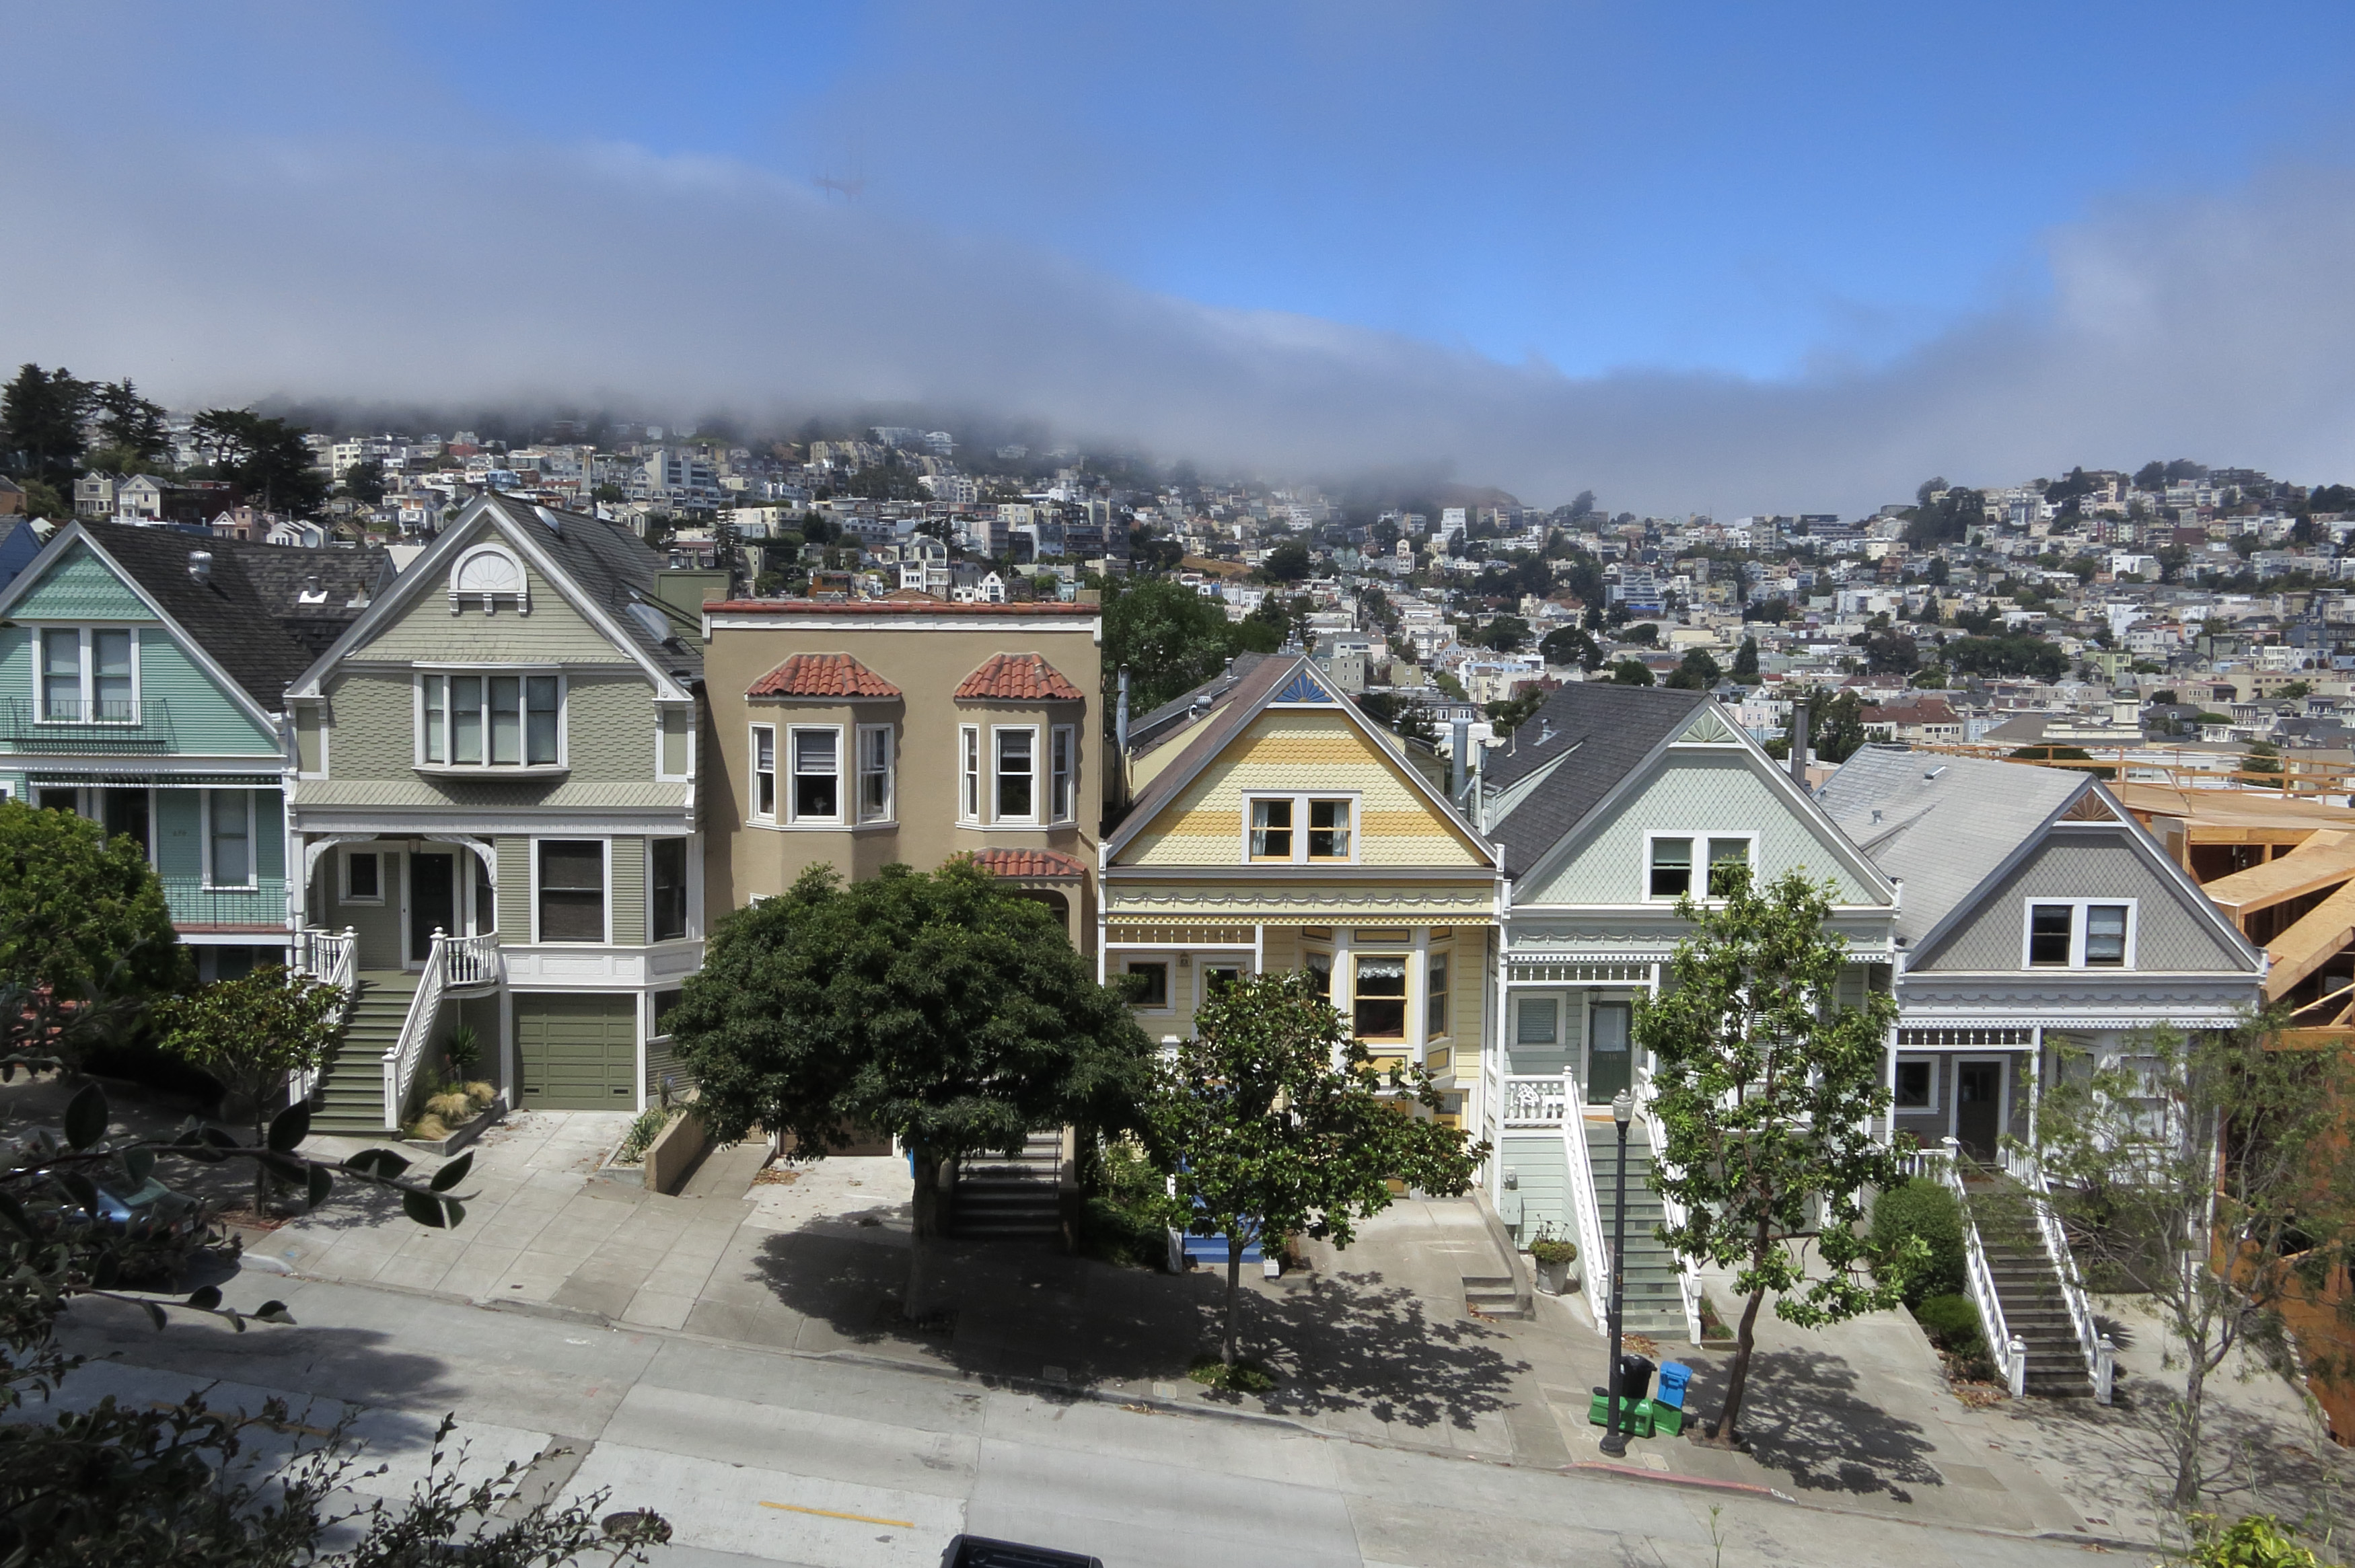 Residential houses line a street in Mission district near Delores Park as typical summer fog rolls in on July 4, 2014 in San Francisco, California.